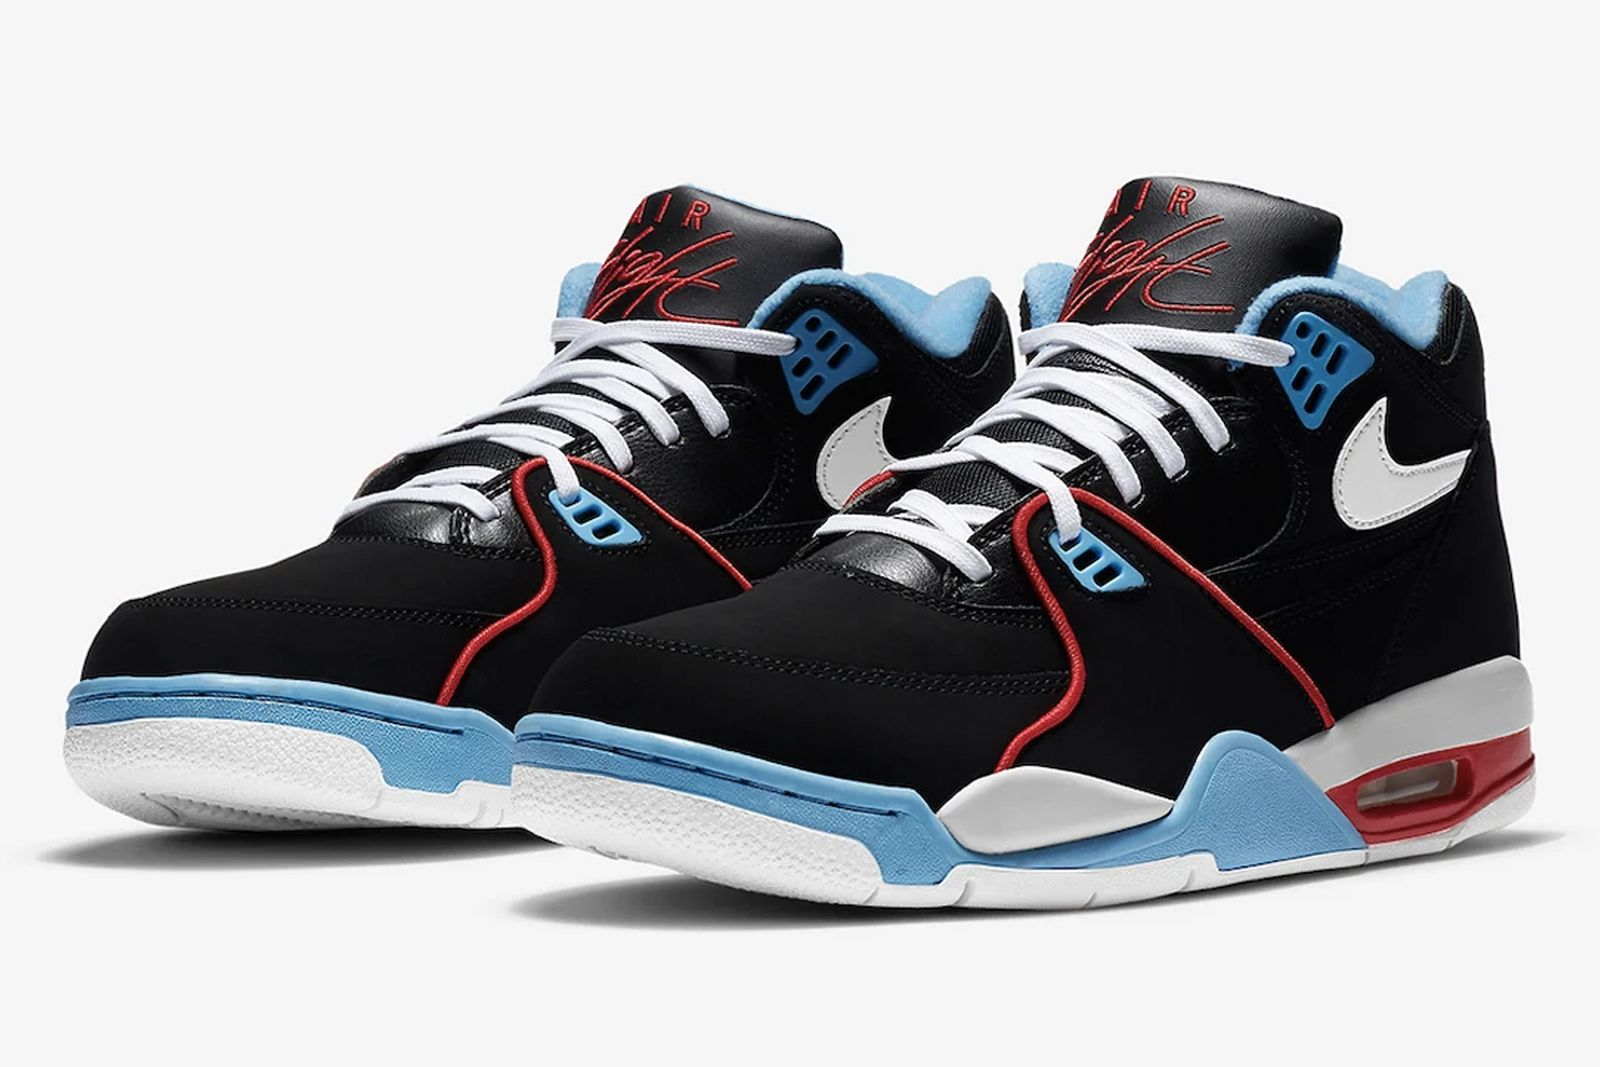 nike-air-flight-89-chicago-release-date-price-01